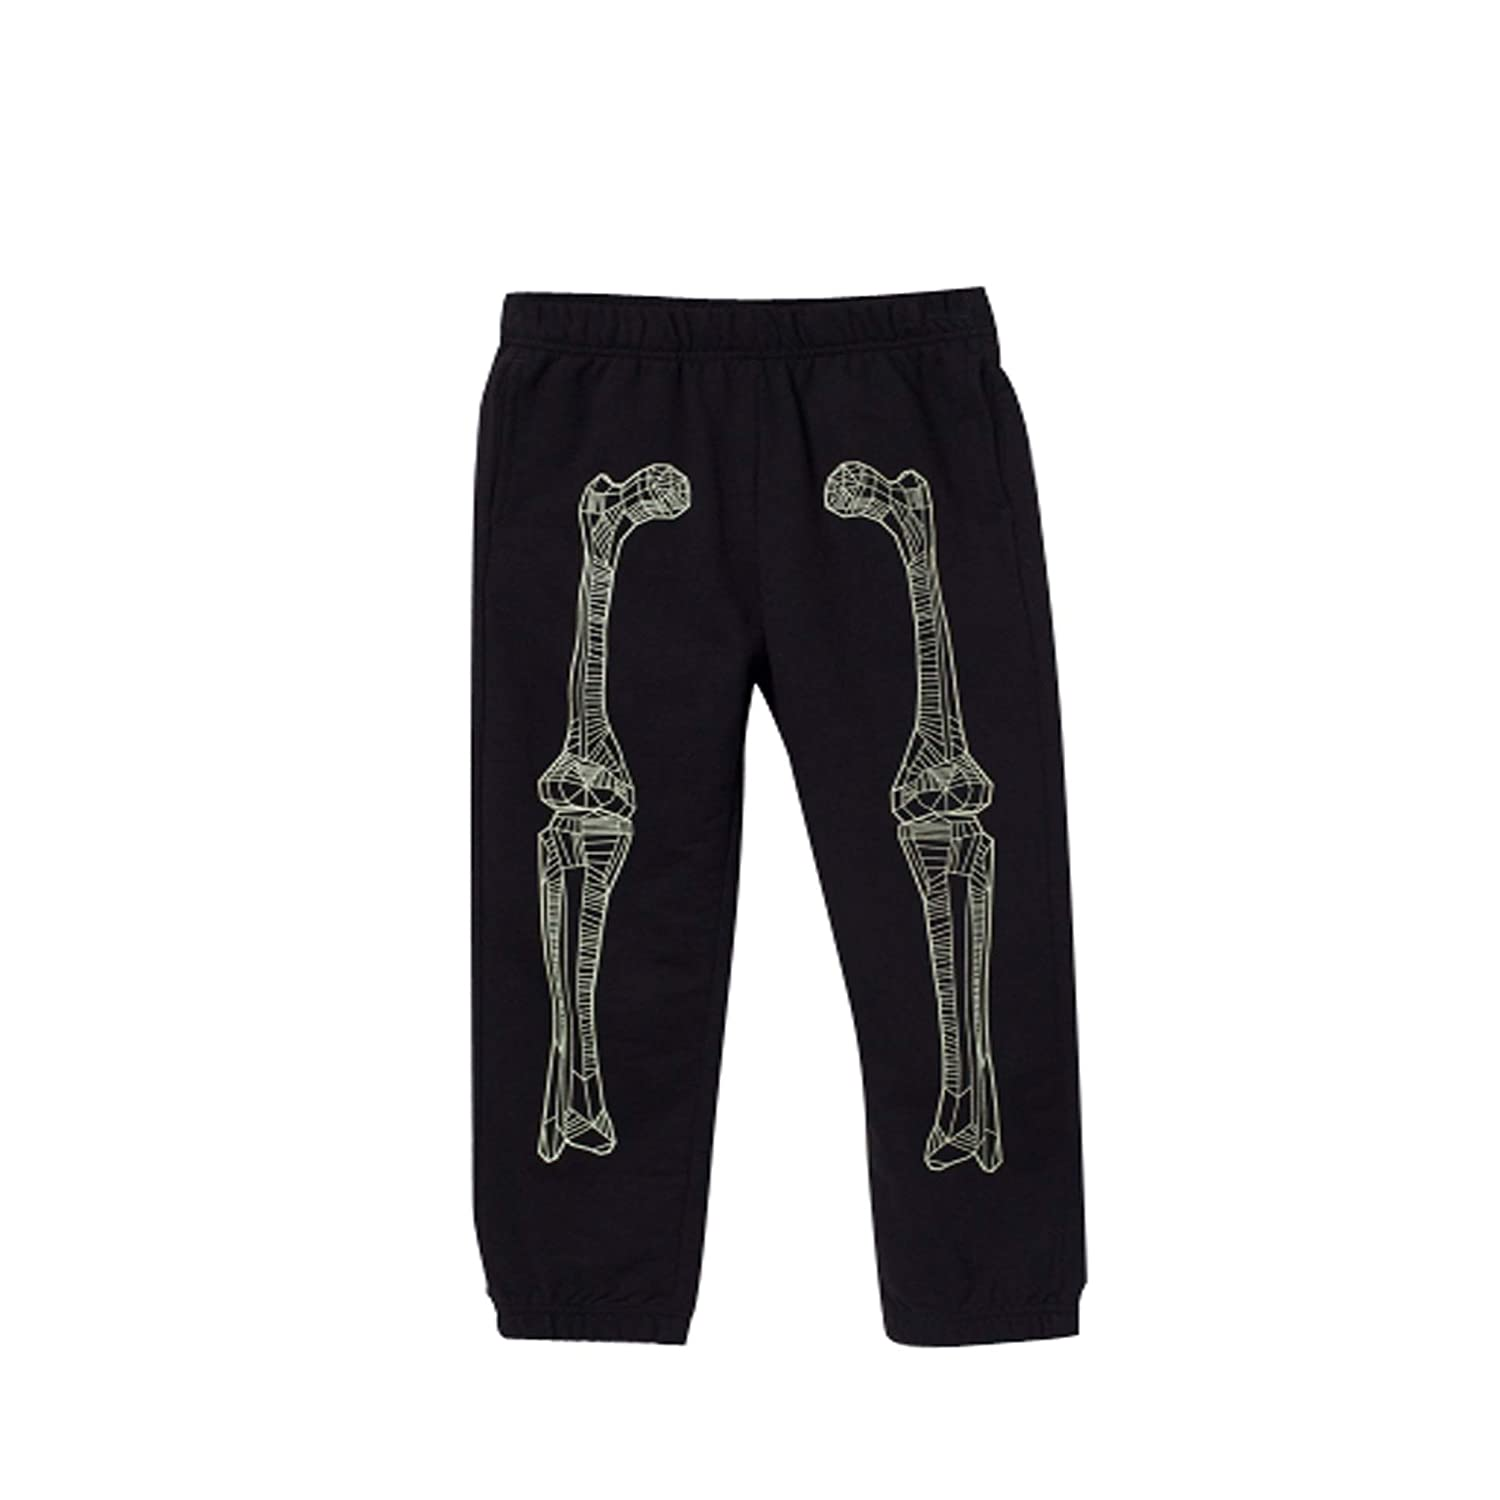 LYM Bossini Boys Spring Festival Skeleton Print Knit Pants for Party or Everyday Wear